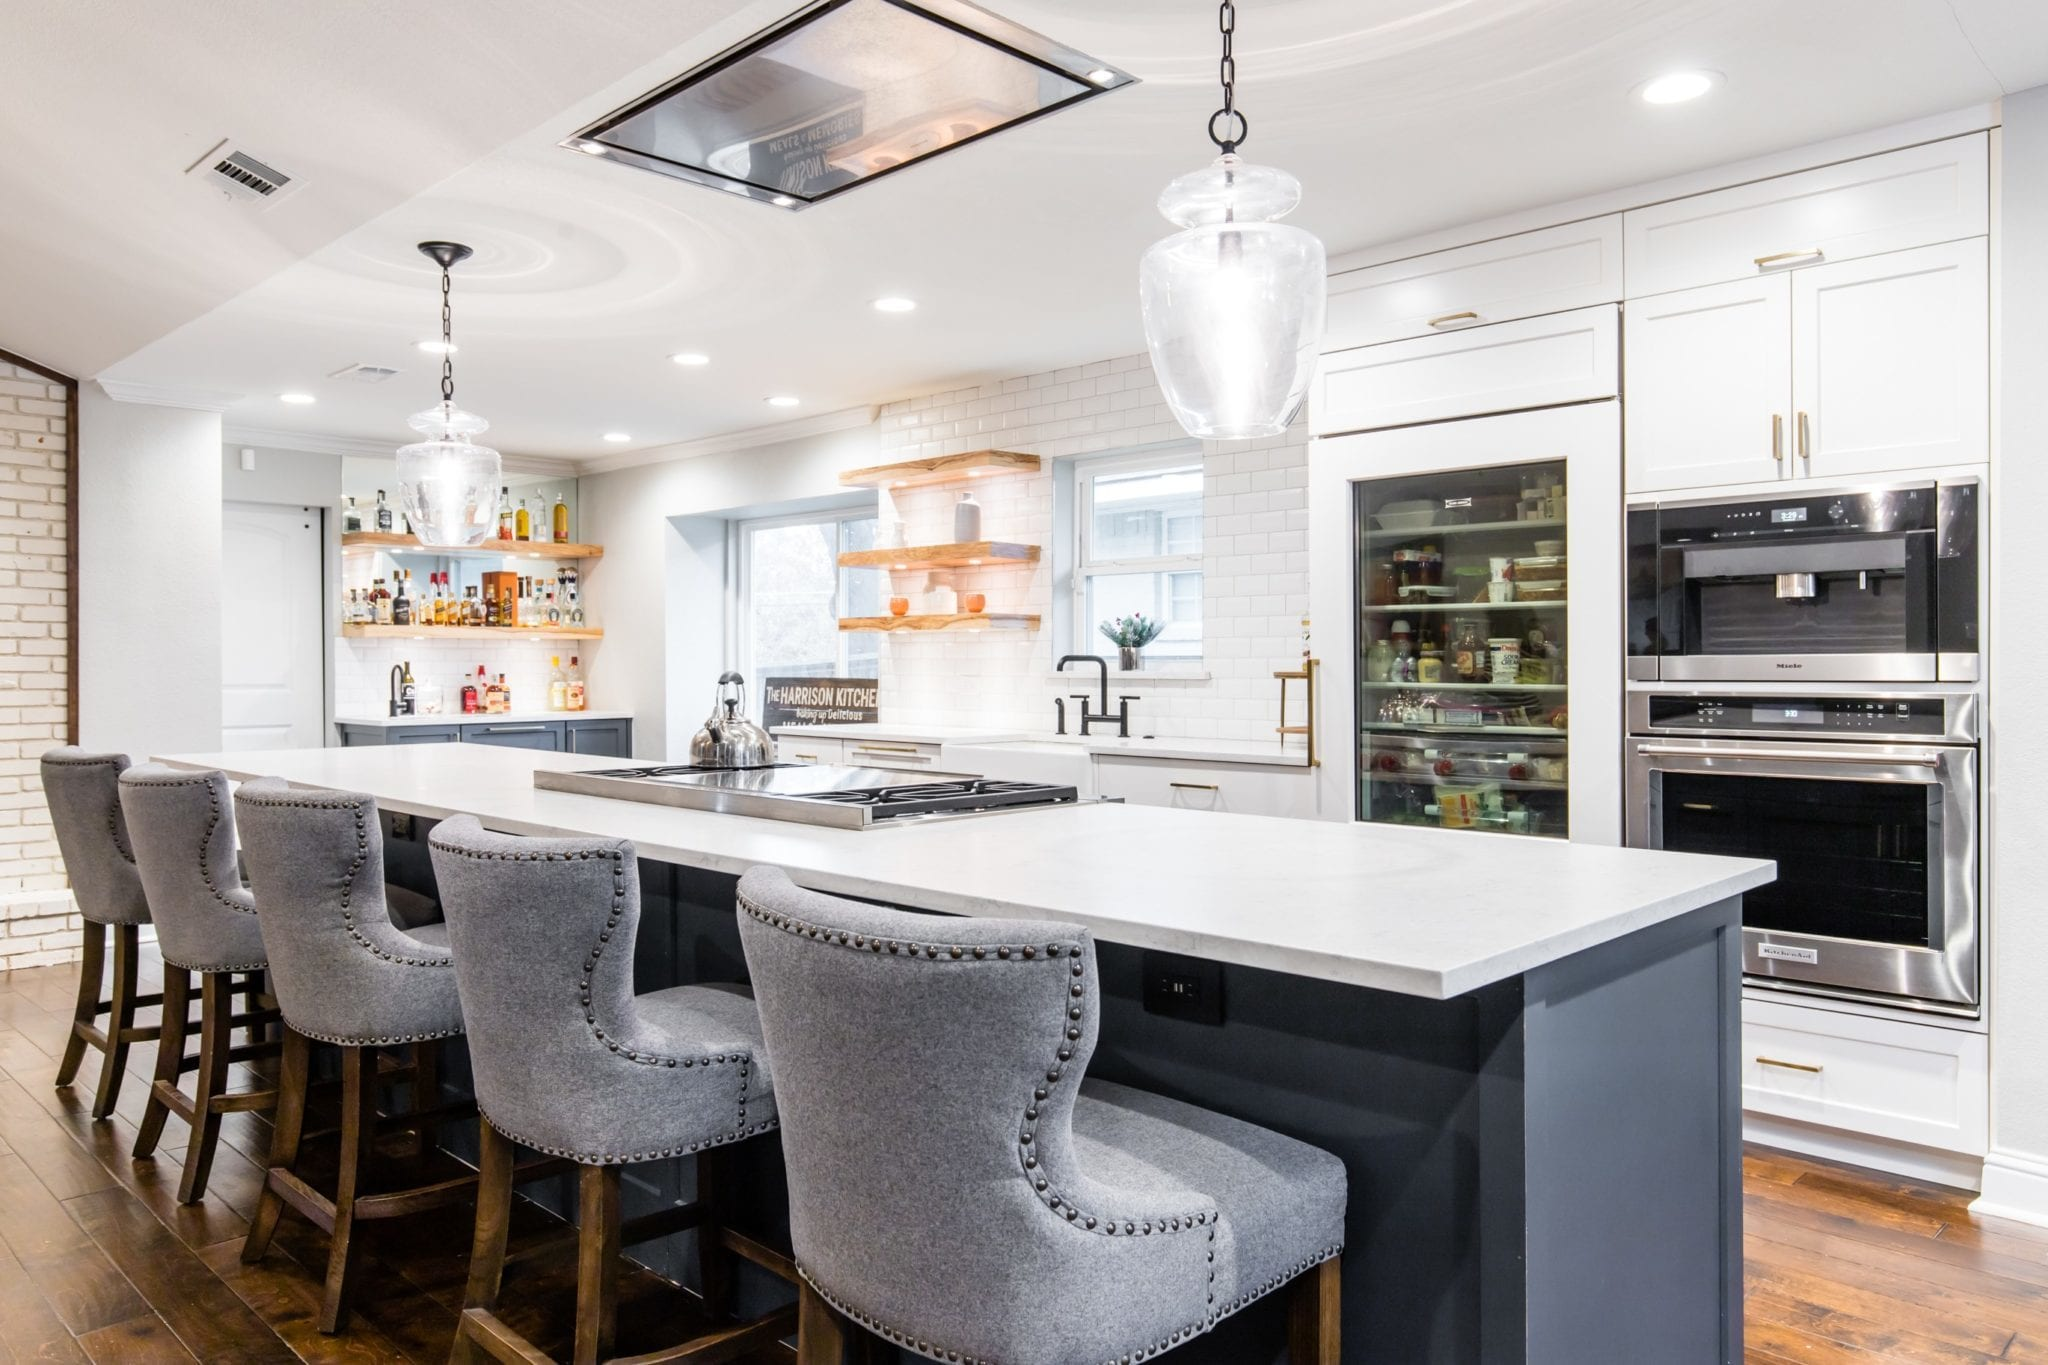 Single-Family-Home-Kitchen-Remodel-Custom-Cabinets-Countertops-Wolf-Stovetop-Faber-Vent-Hood-Open-Shelves-Kitchen-Island-Light-Fixtures-Wood-Floors-HighlandMeadows-75238_1